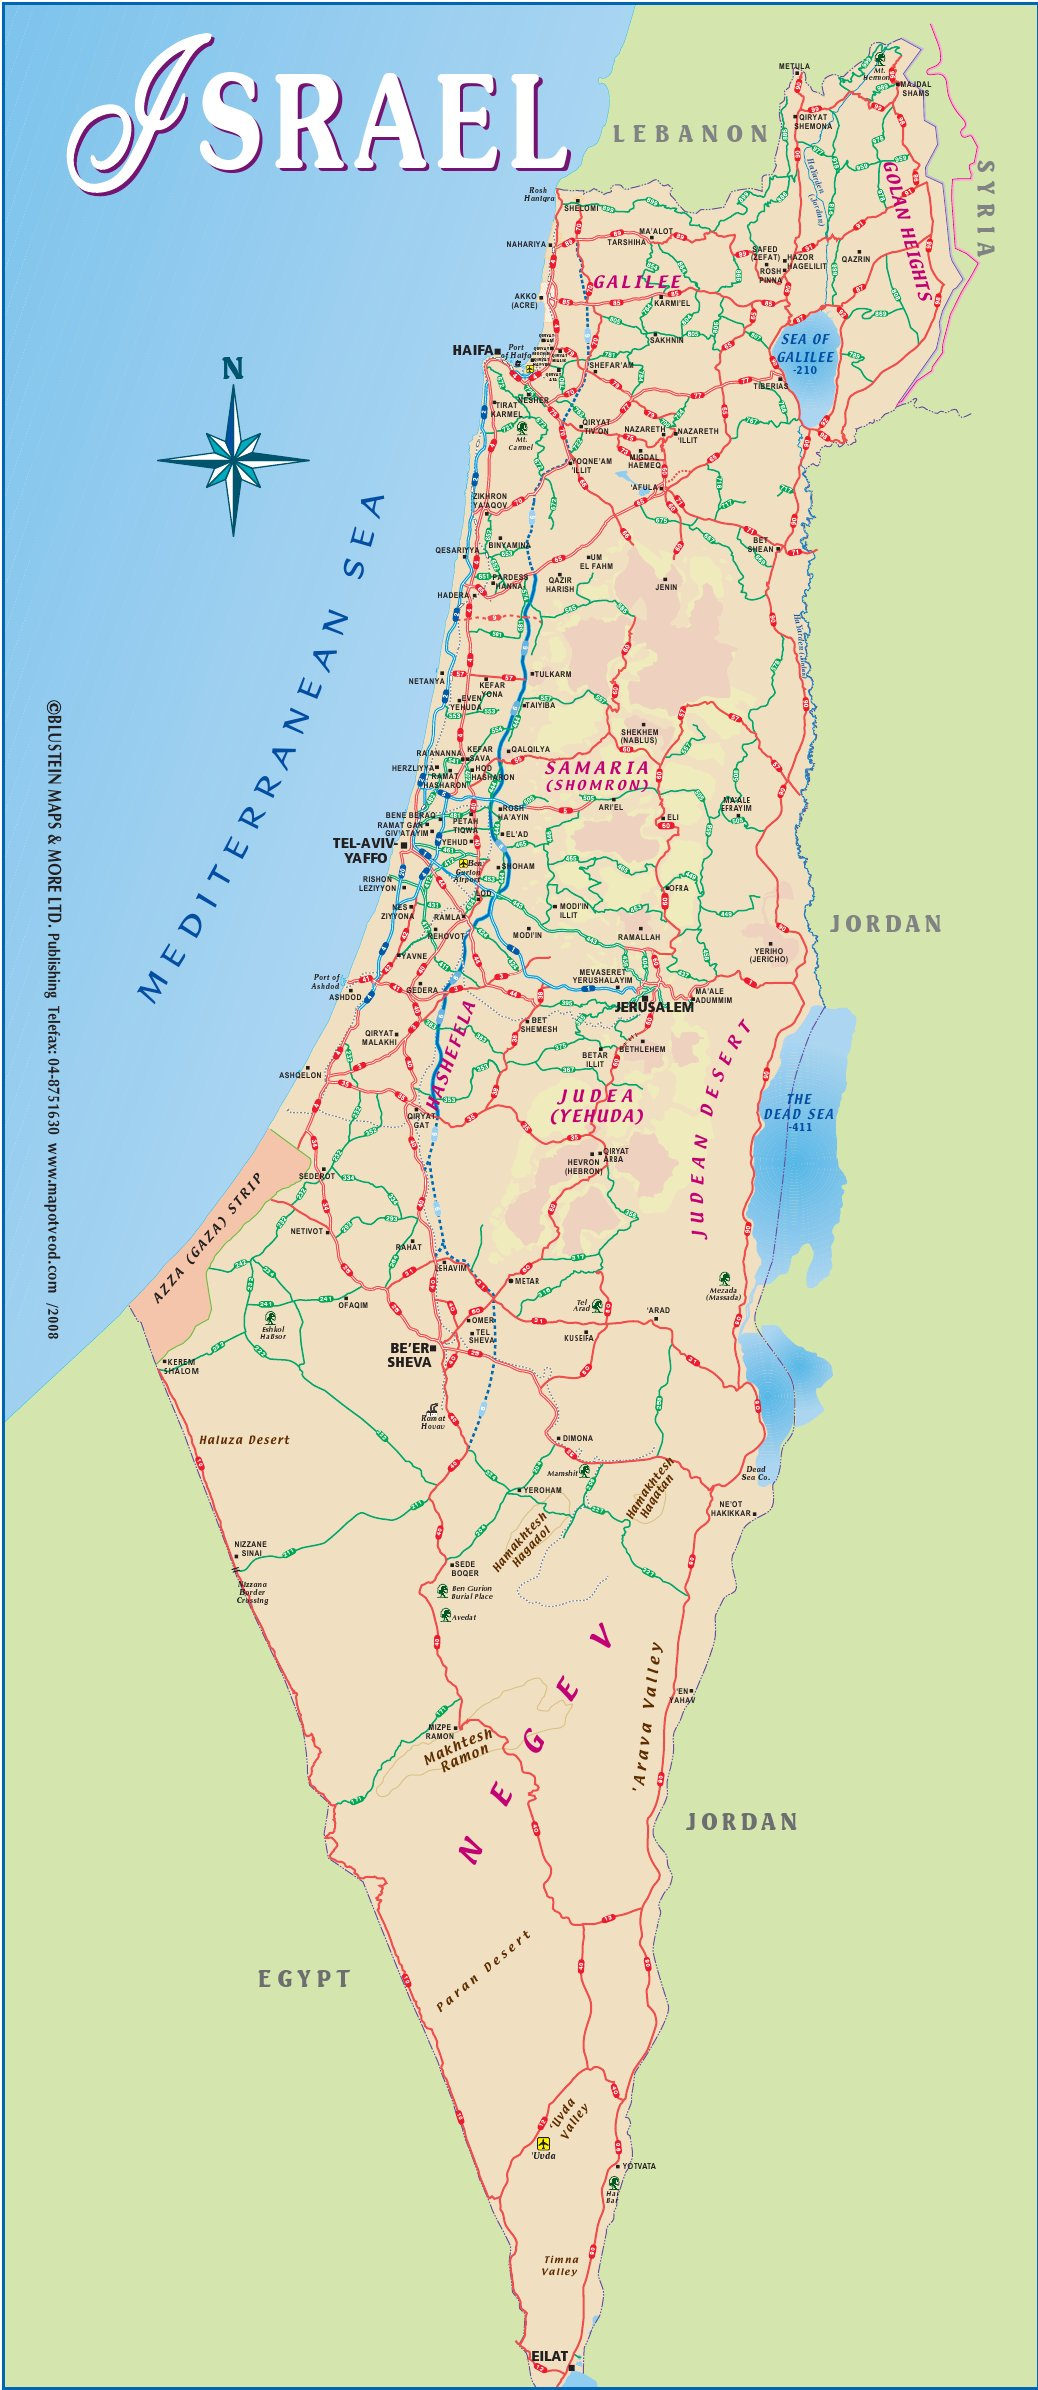 Israel Touristische Karte – Tourist Map of Israel